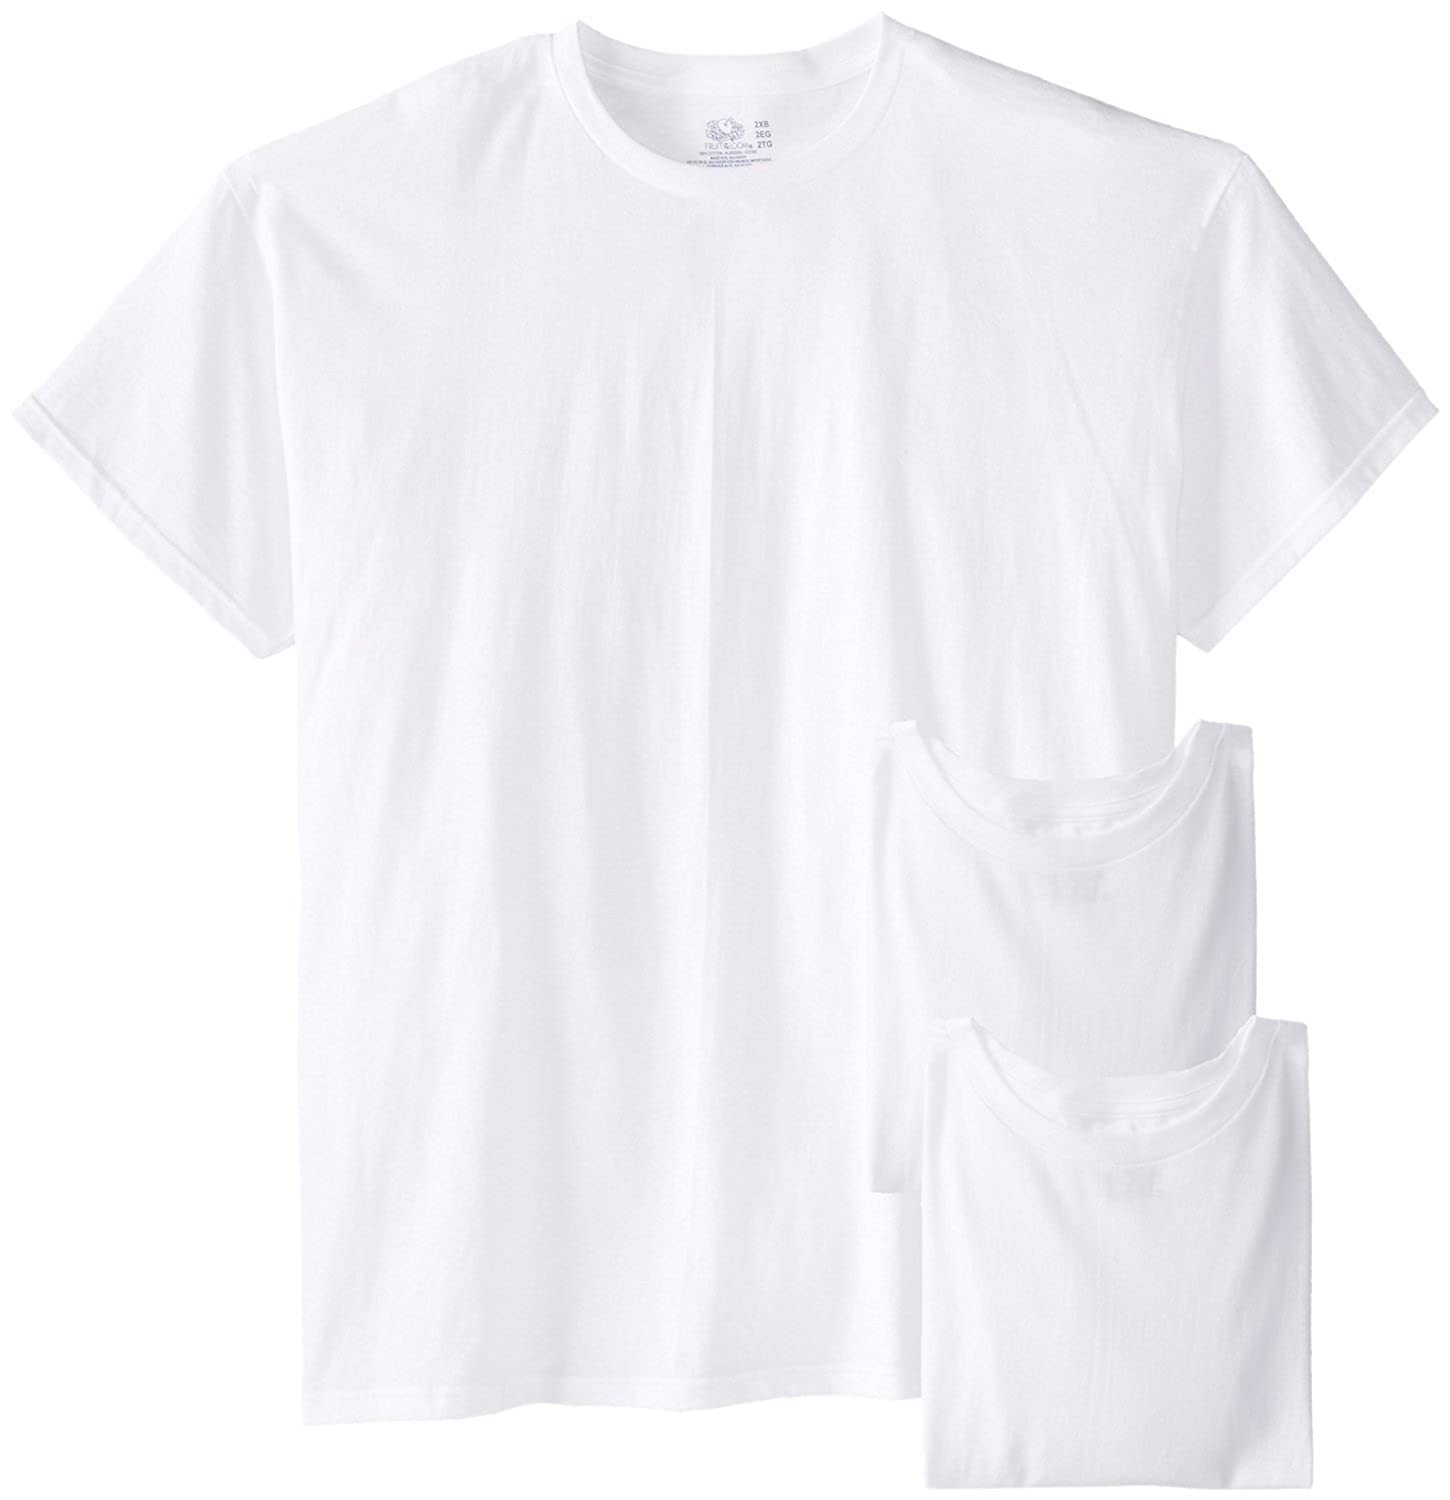 Fruit of the Loom Men/'s Tall Crew Neck T-Shirts Undershirts